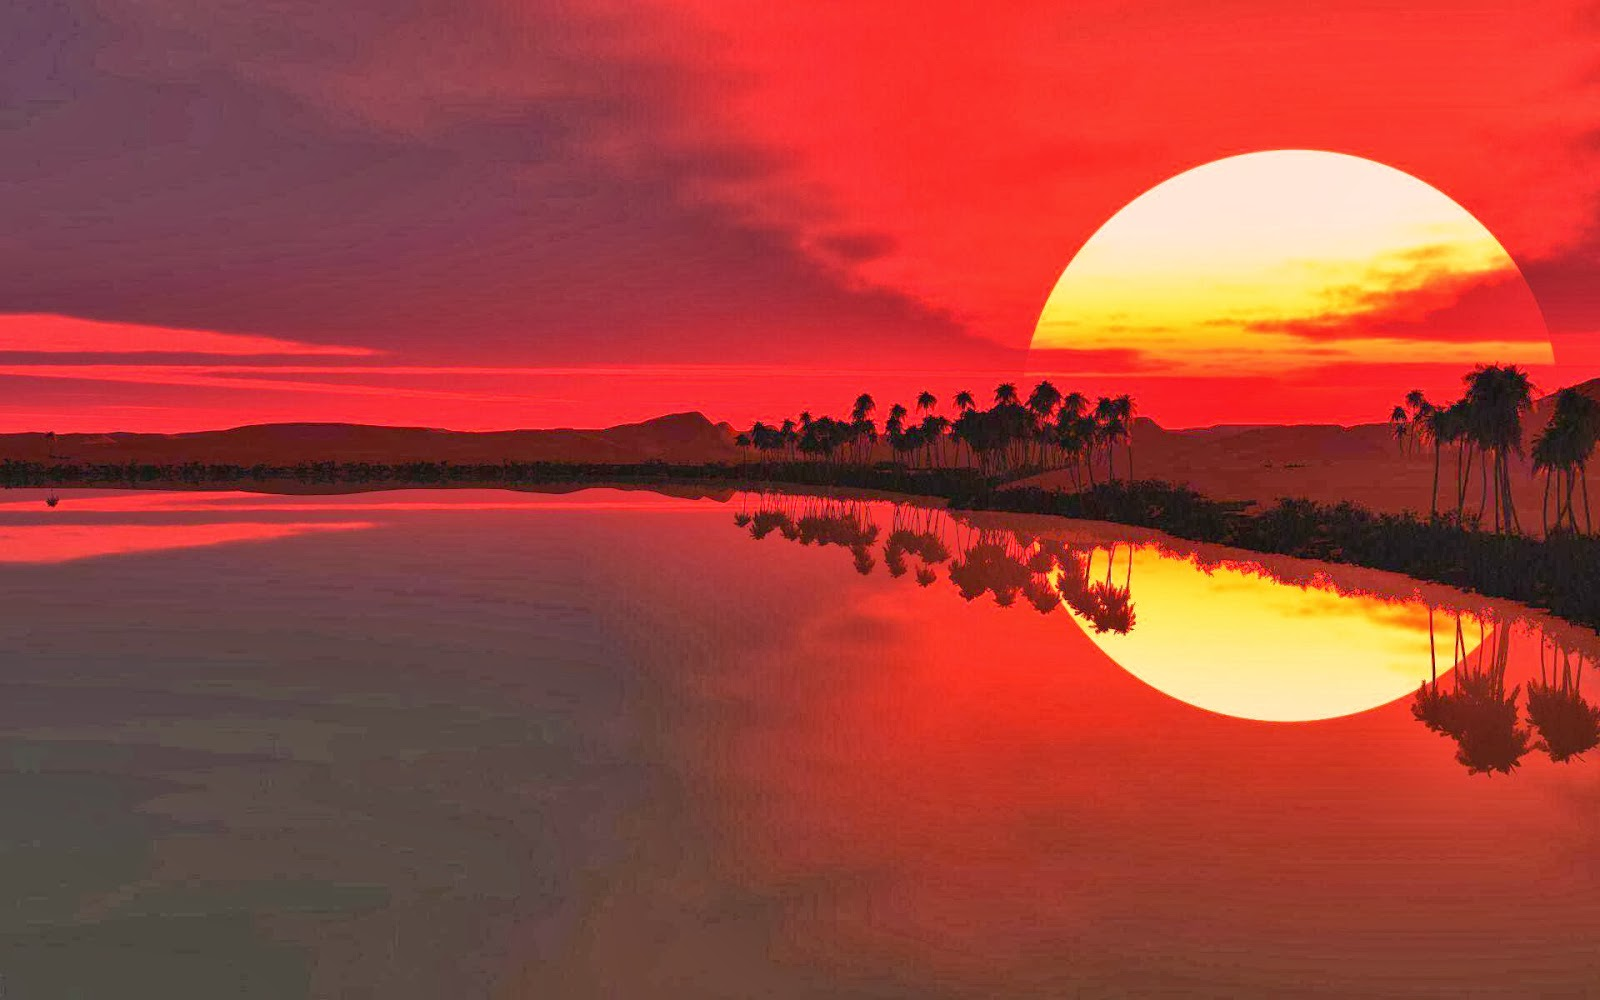 Sunrise and Sunset HD Wallpapers - Wallpapers Free